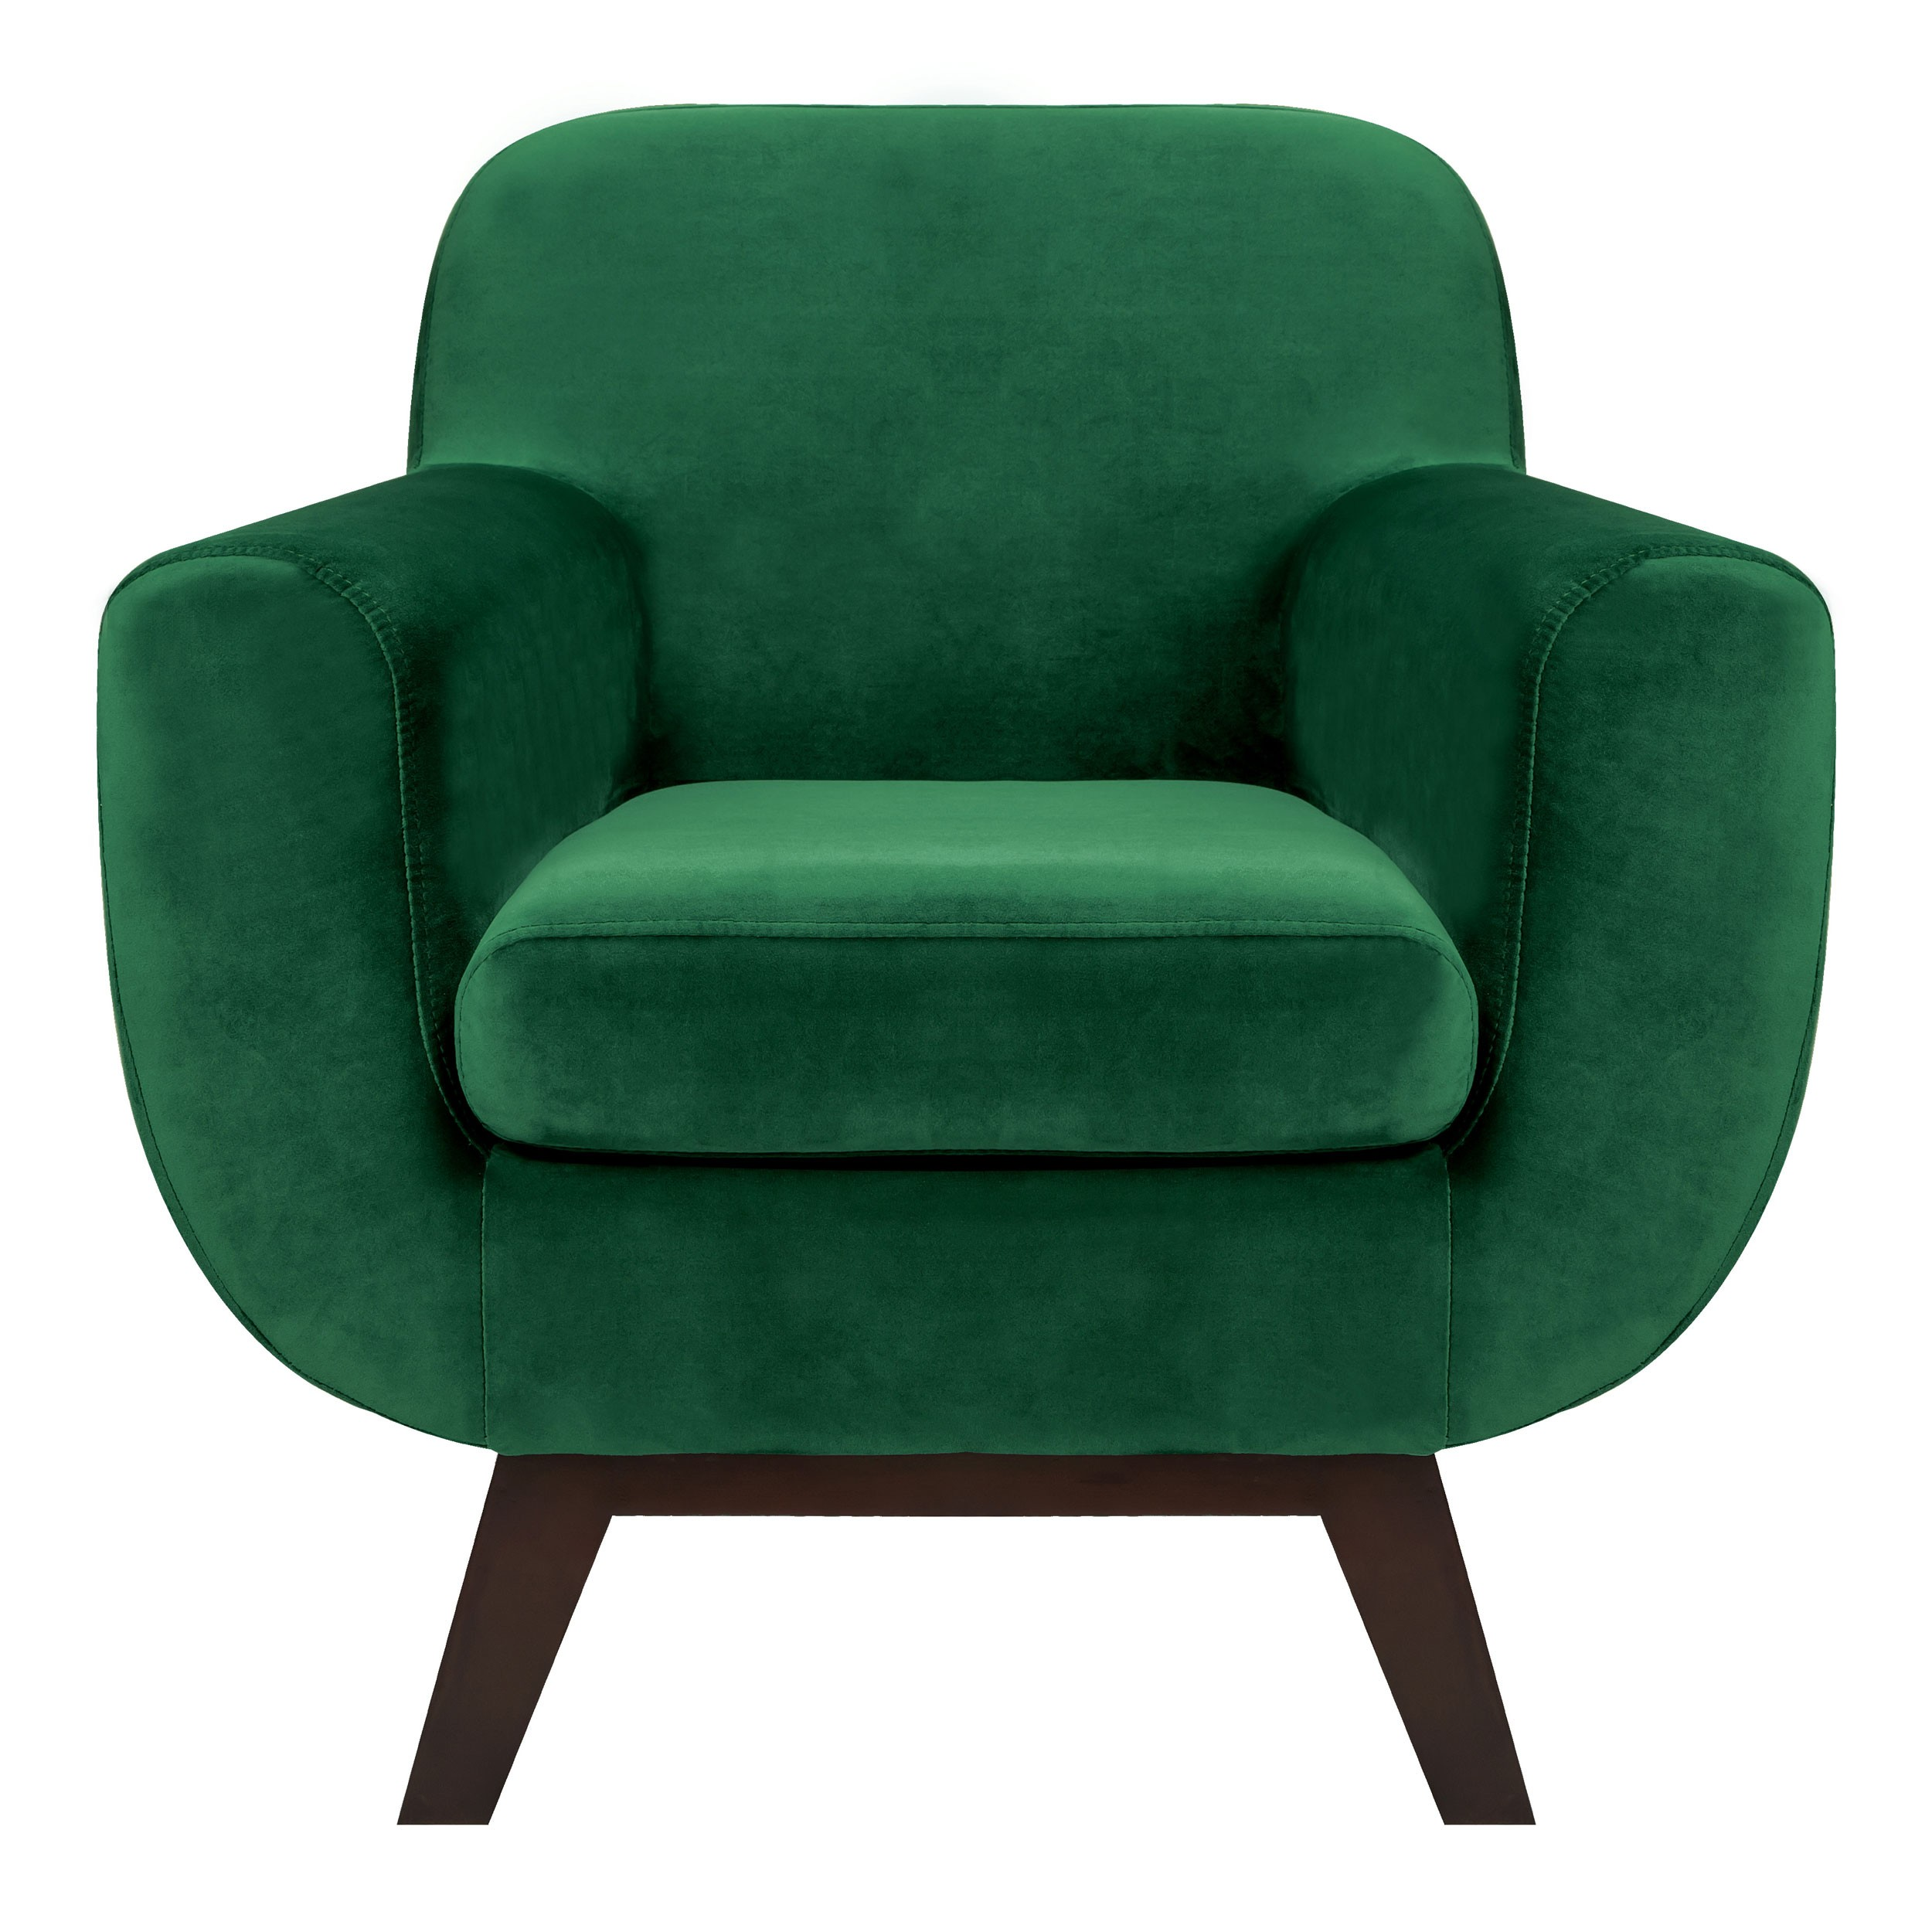 fauteuil copenhague en velours vert achetez les fauteuils copenhague en velours verts design. Black Bedroom Furniture Sets. Home Design Ideas